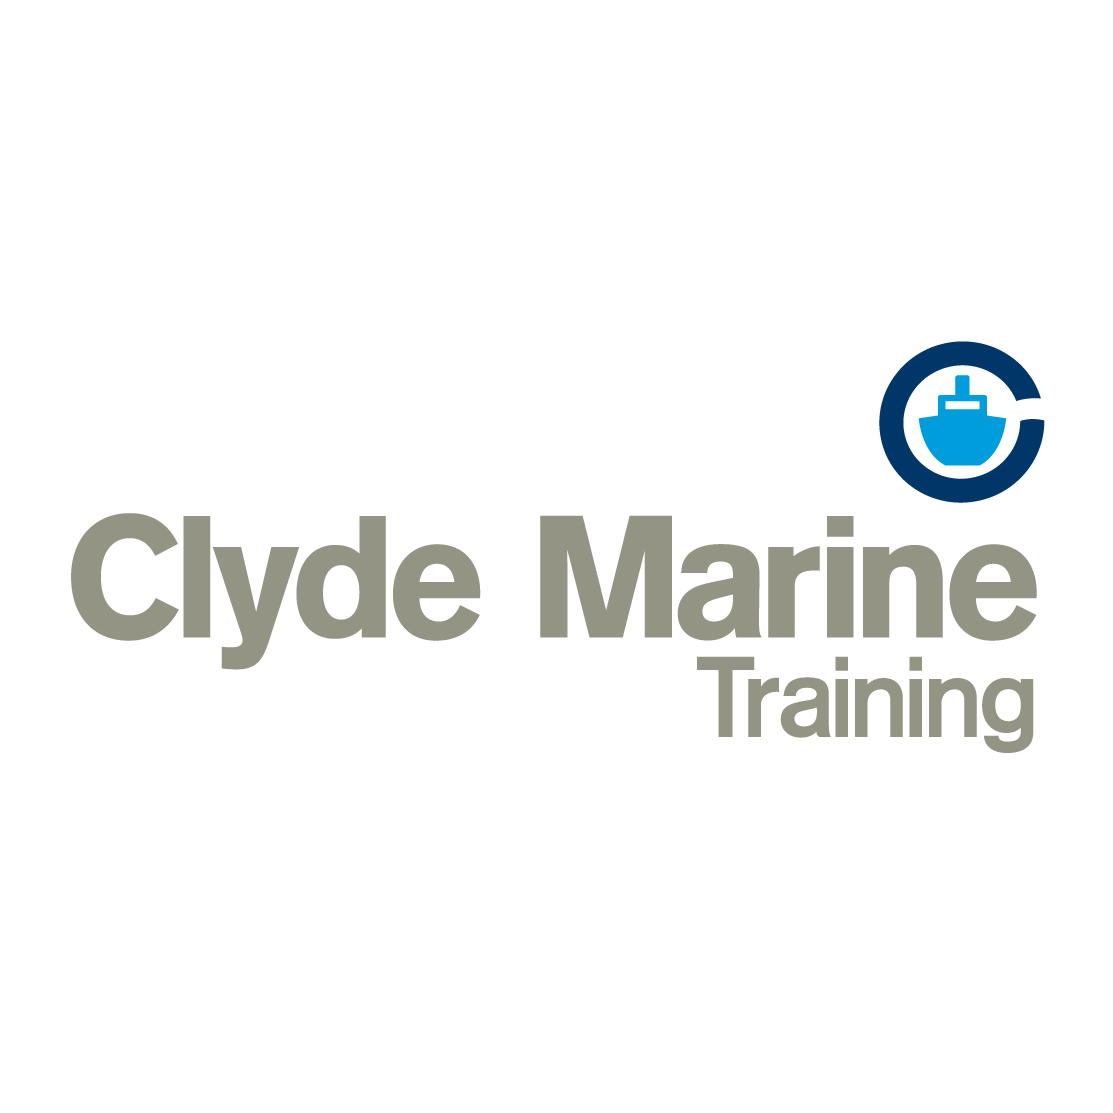 Clyde Marine Training